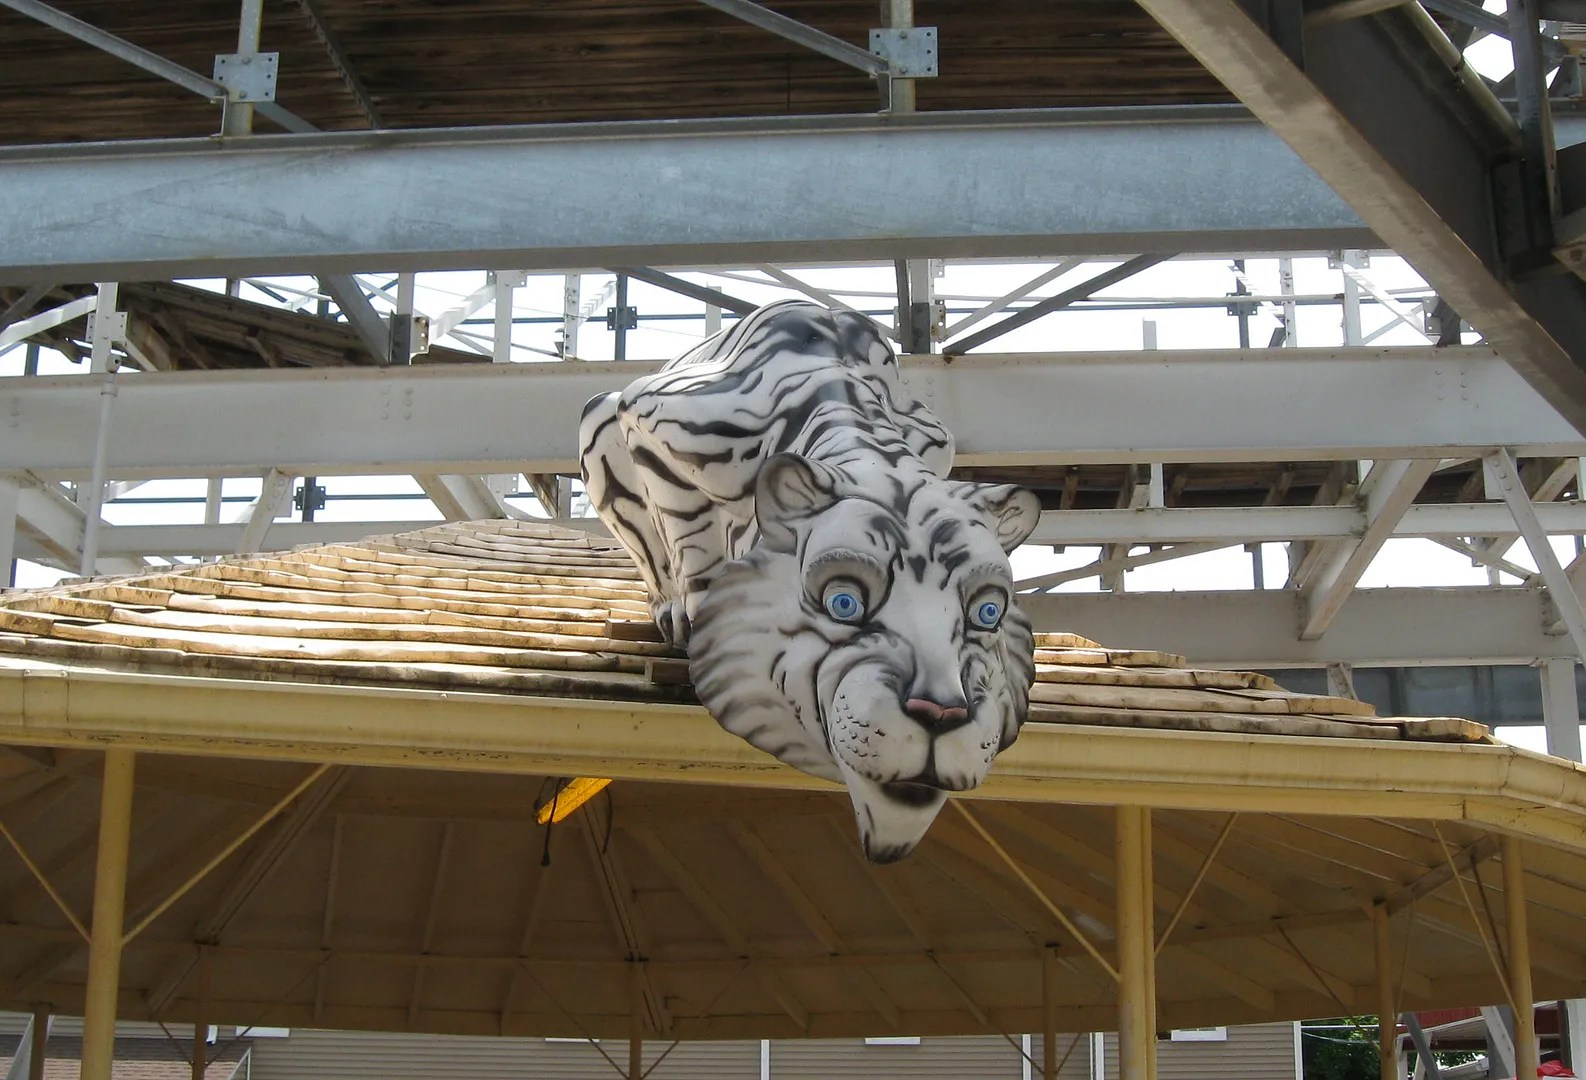 White Tiger guards rides @ Indiana Beach